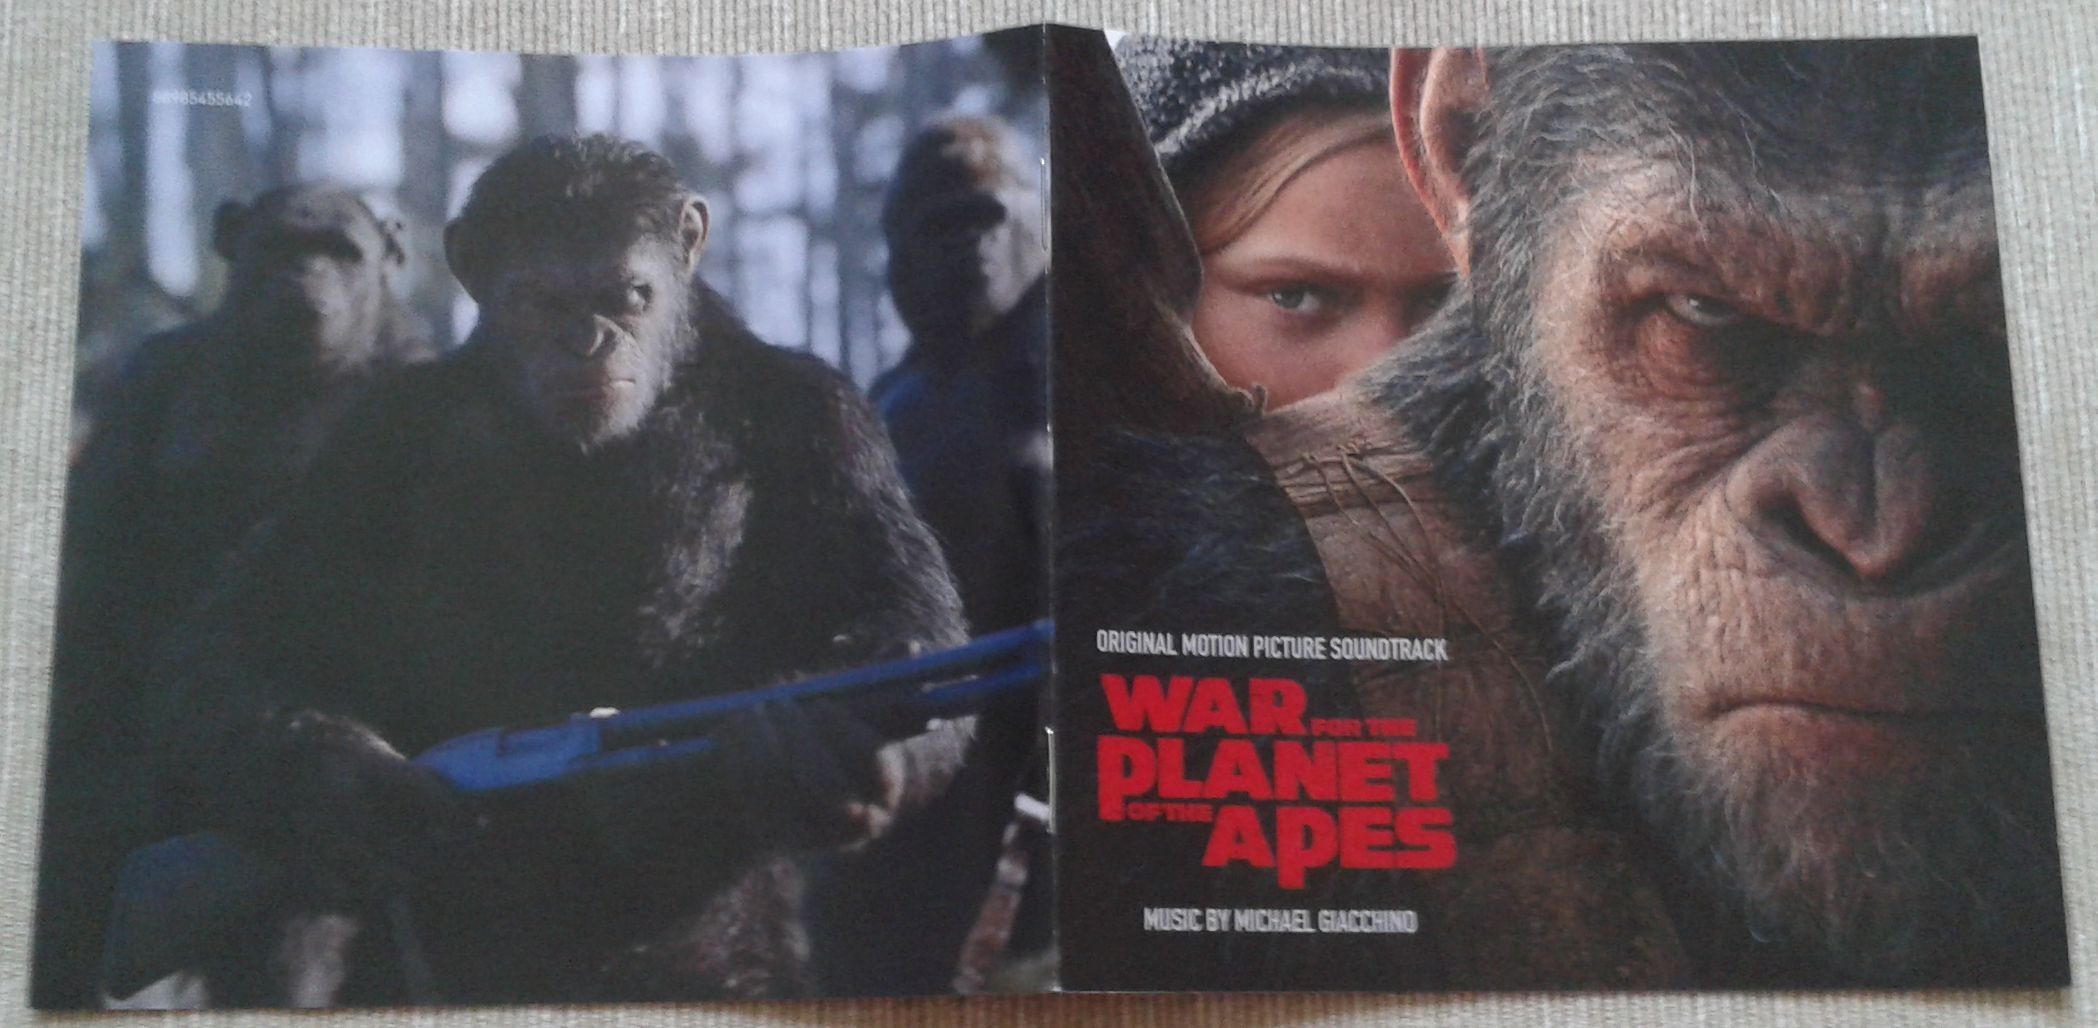 5. War for the Planet of the Apes booklet 1.jpg